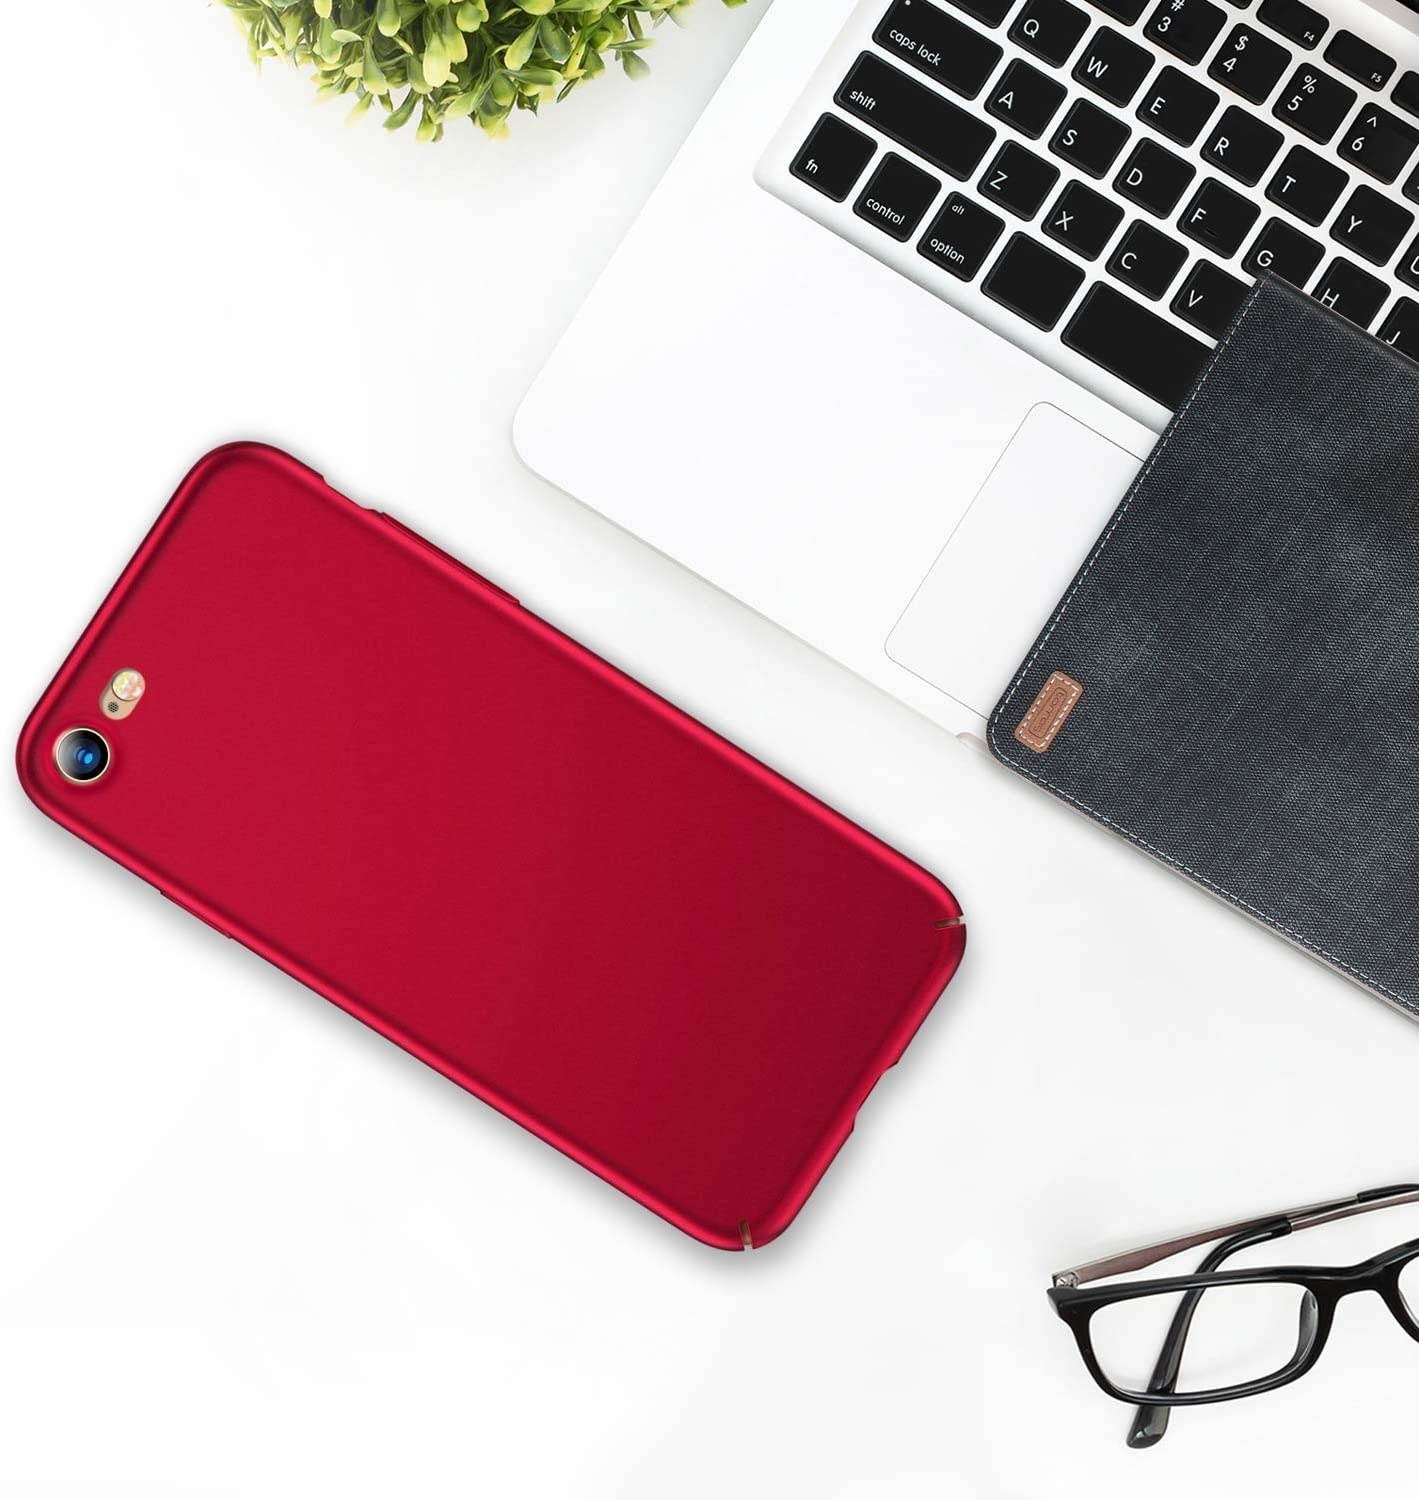 A phone with the case on lying next to a laptop on a desk